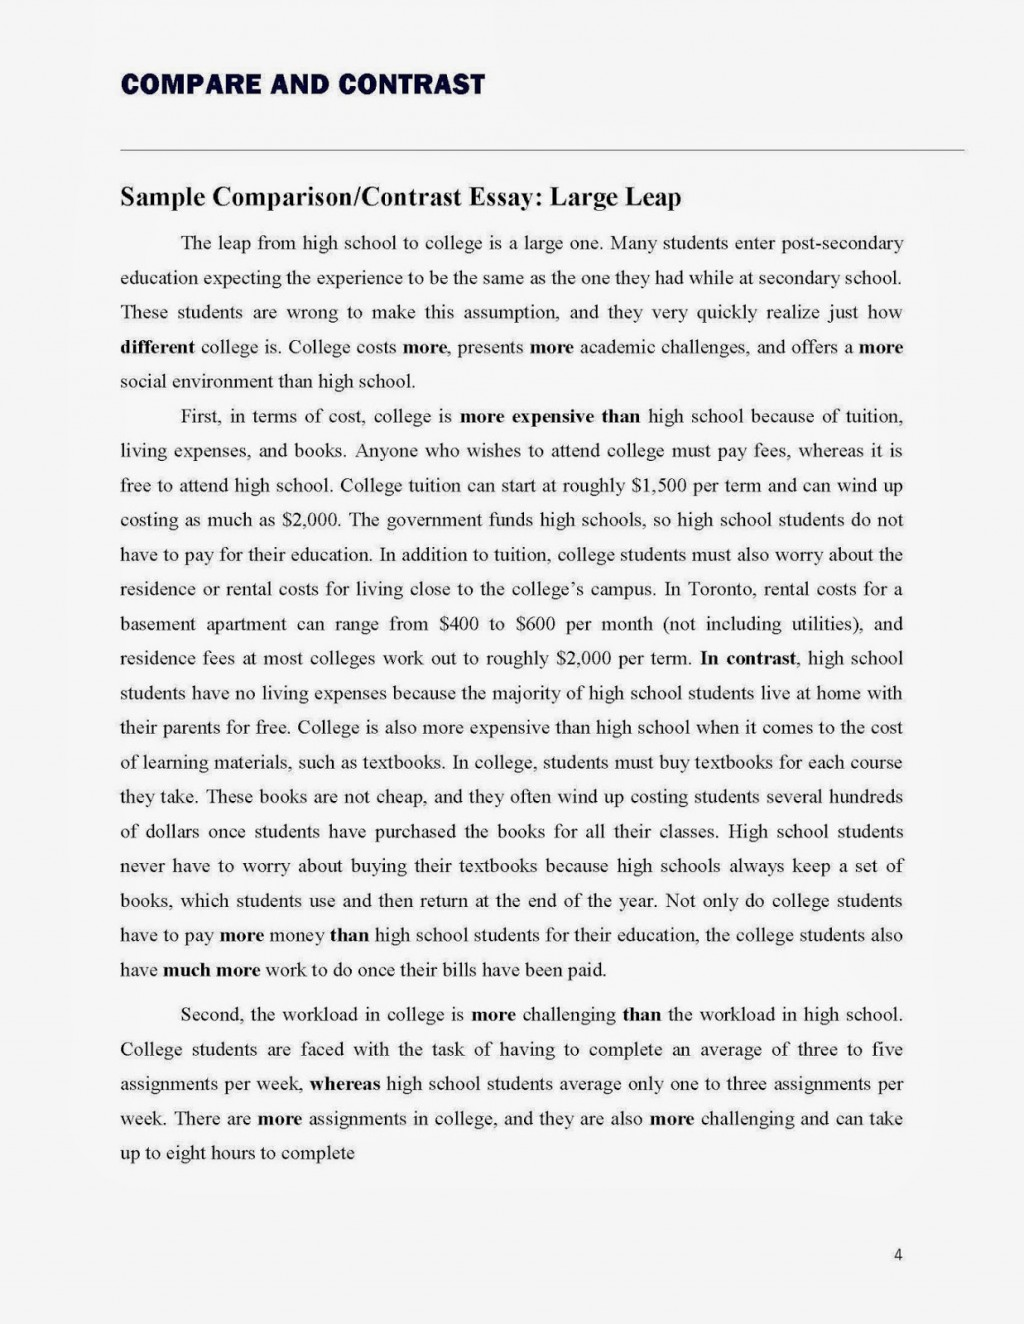 011 Compare And Contrast Essay Compareandcontrastessay Page 4h125 Frightening Sample 4th Grade Introduction Paragraph Ideas Large